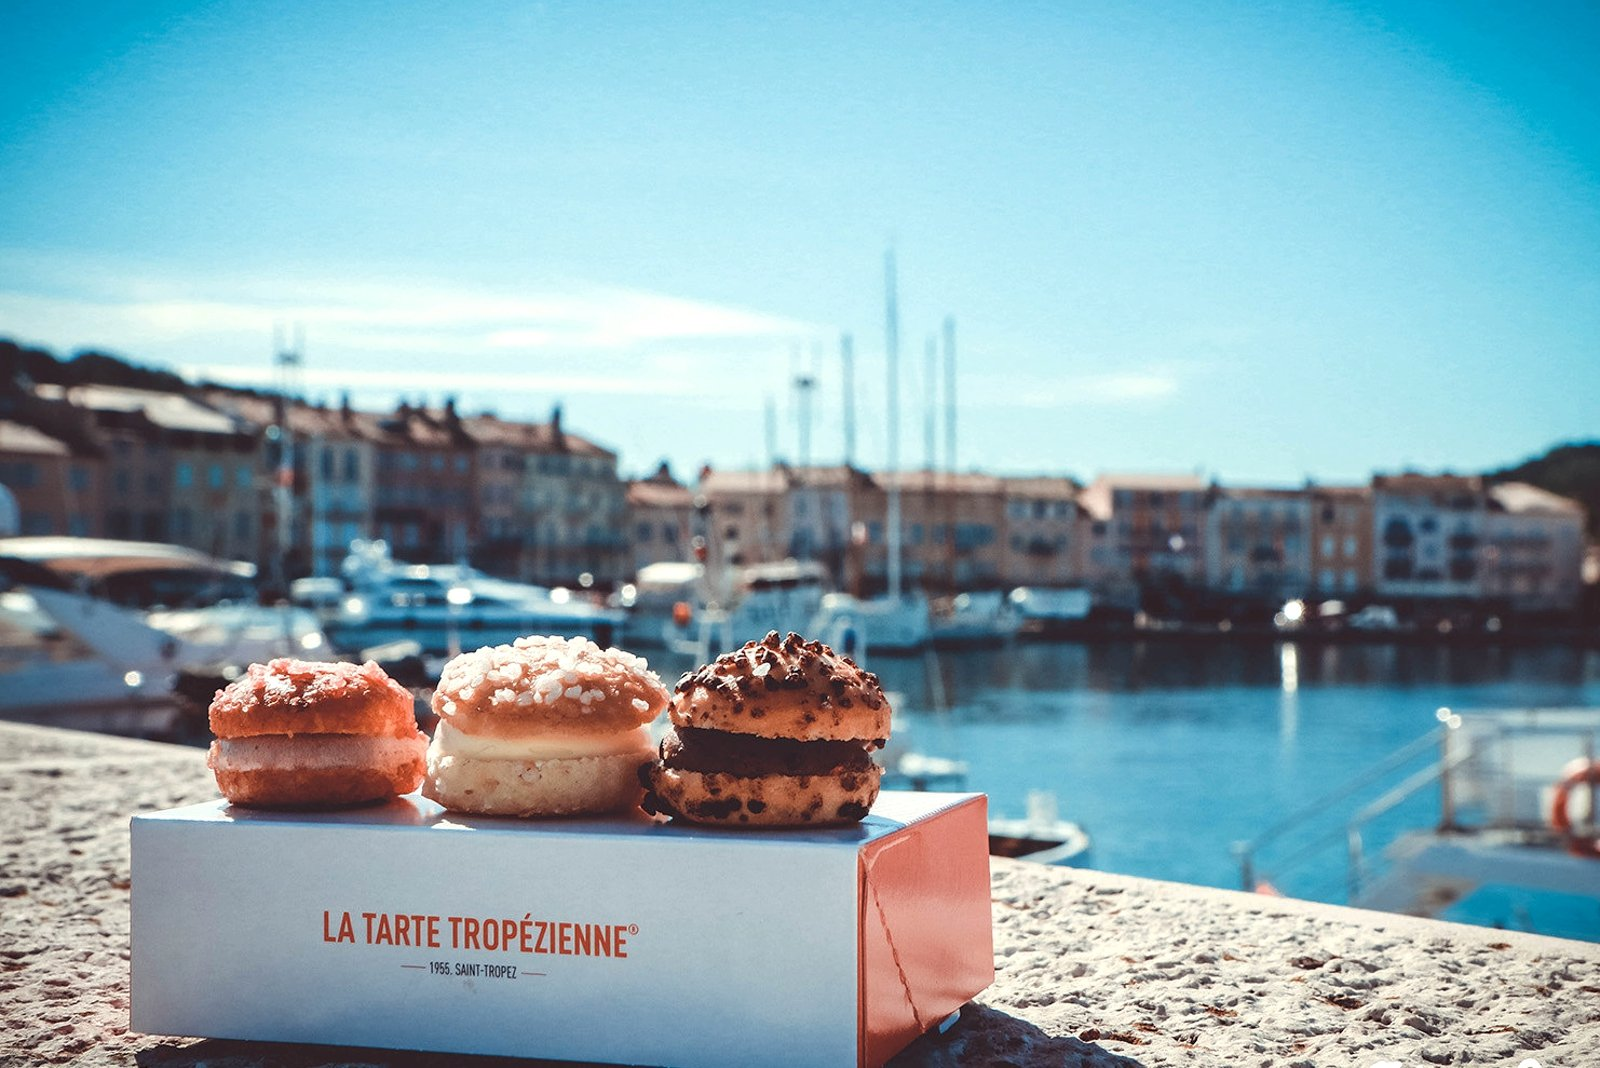 How to try tropezienne tart in Saint-Tropez